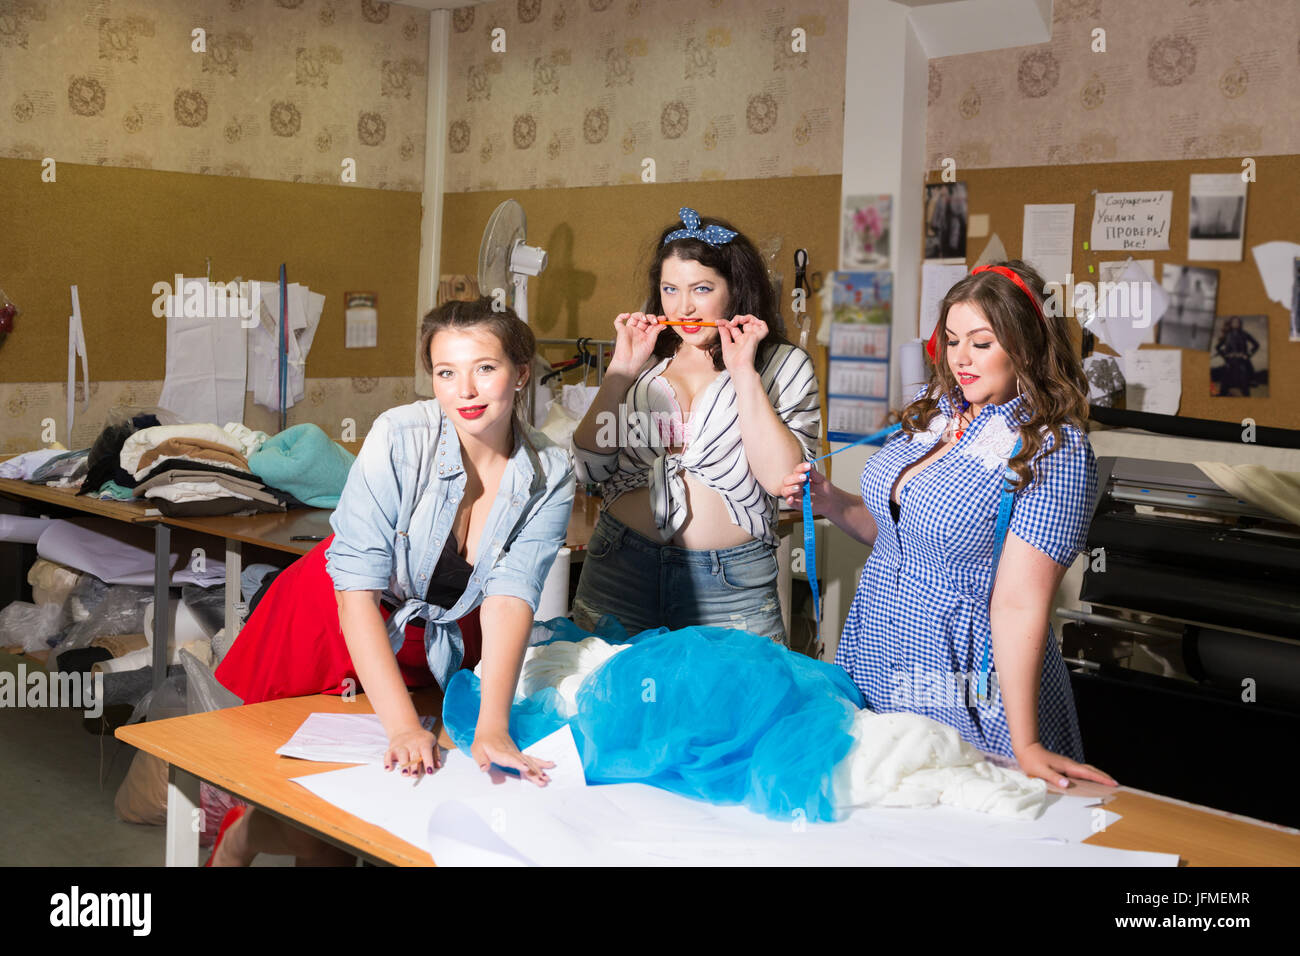 c9eca6f75e0 Beautiful curvy female models imagined as pinup seamstresses at a clothing  workshop - Stock Image